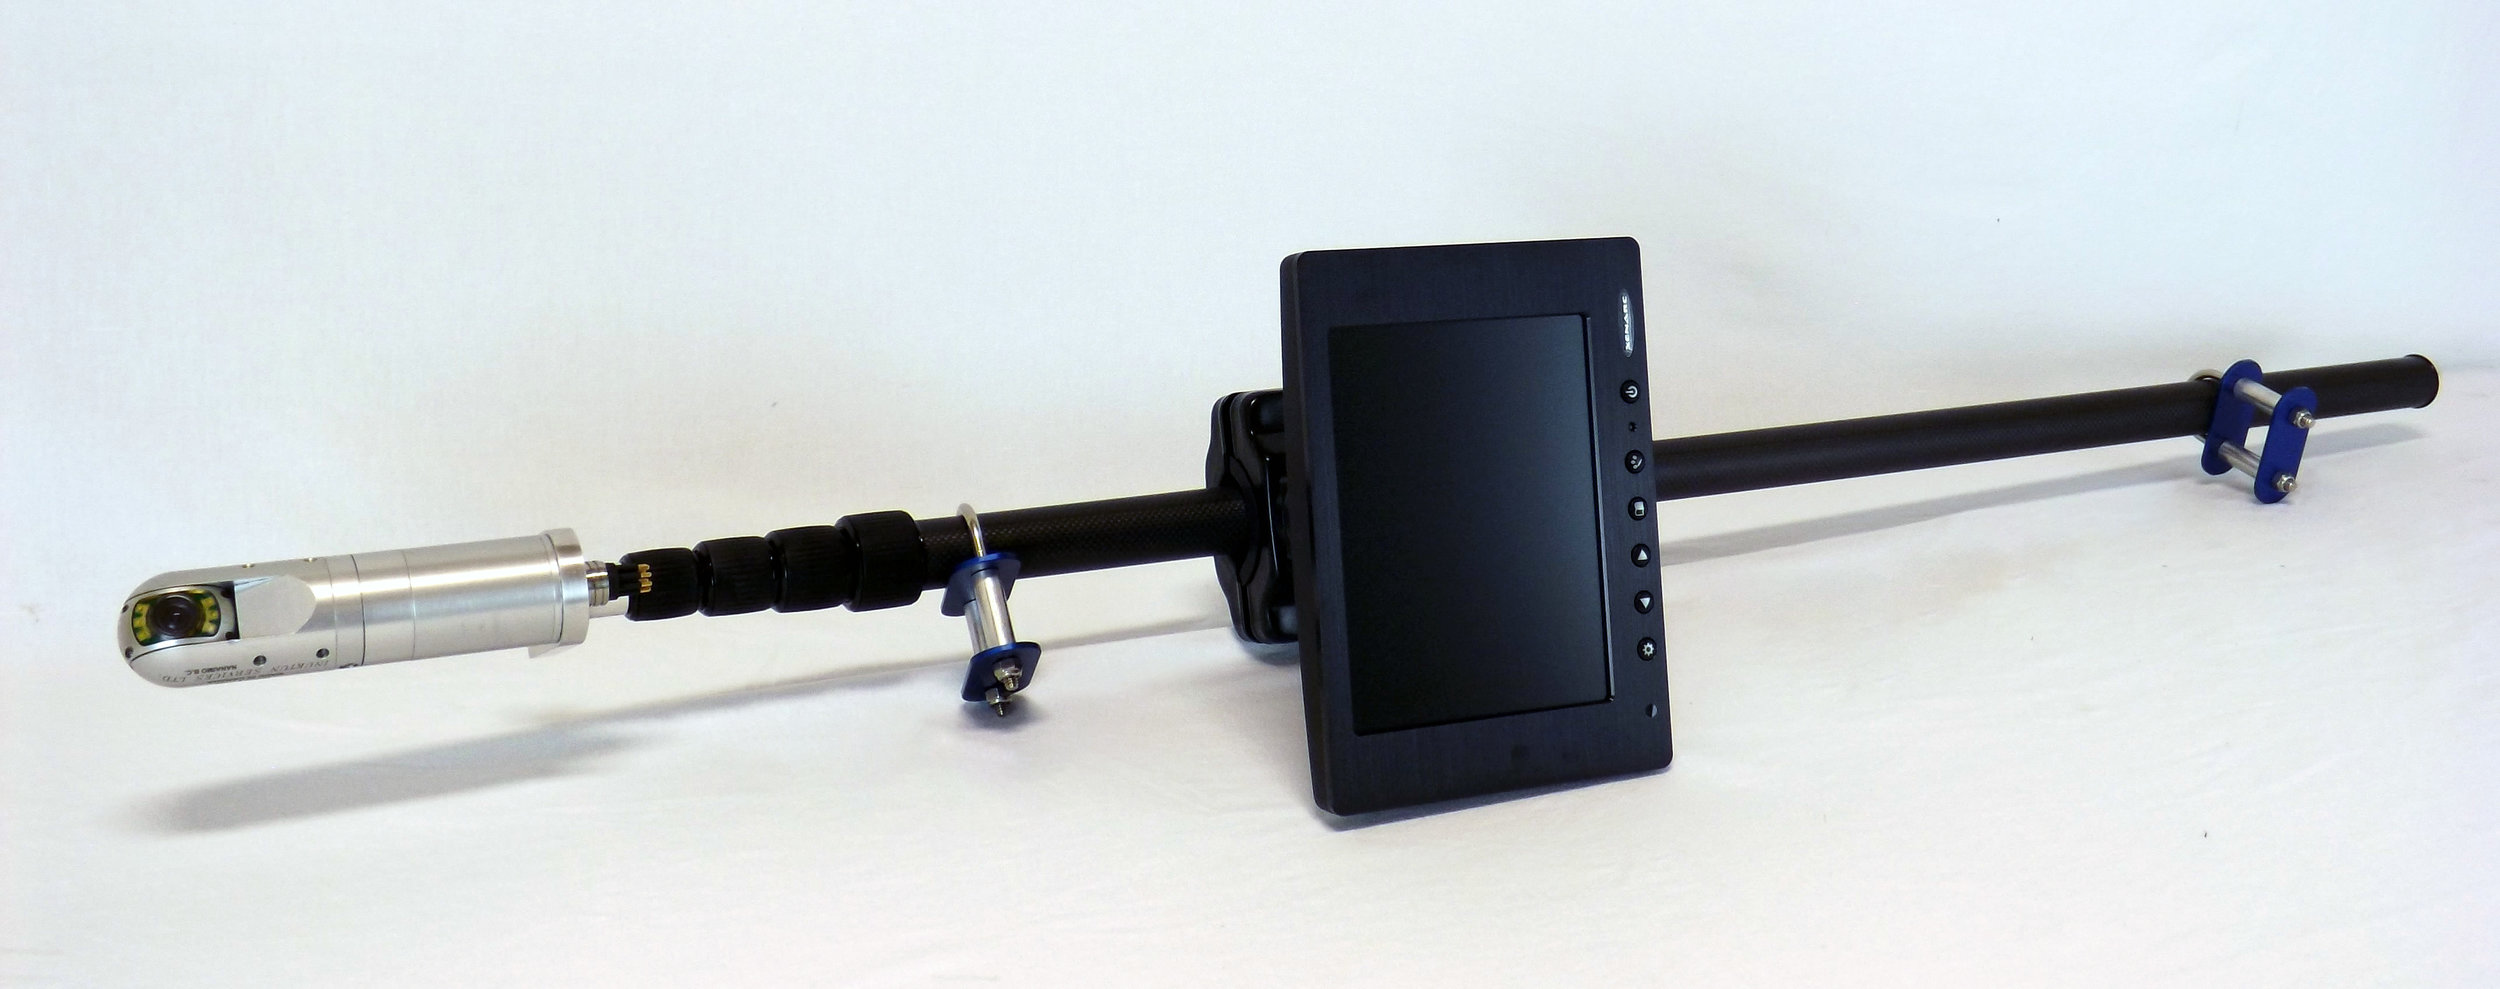 Spectrum 45™ Pole Camera with Optional Monitor